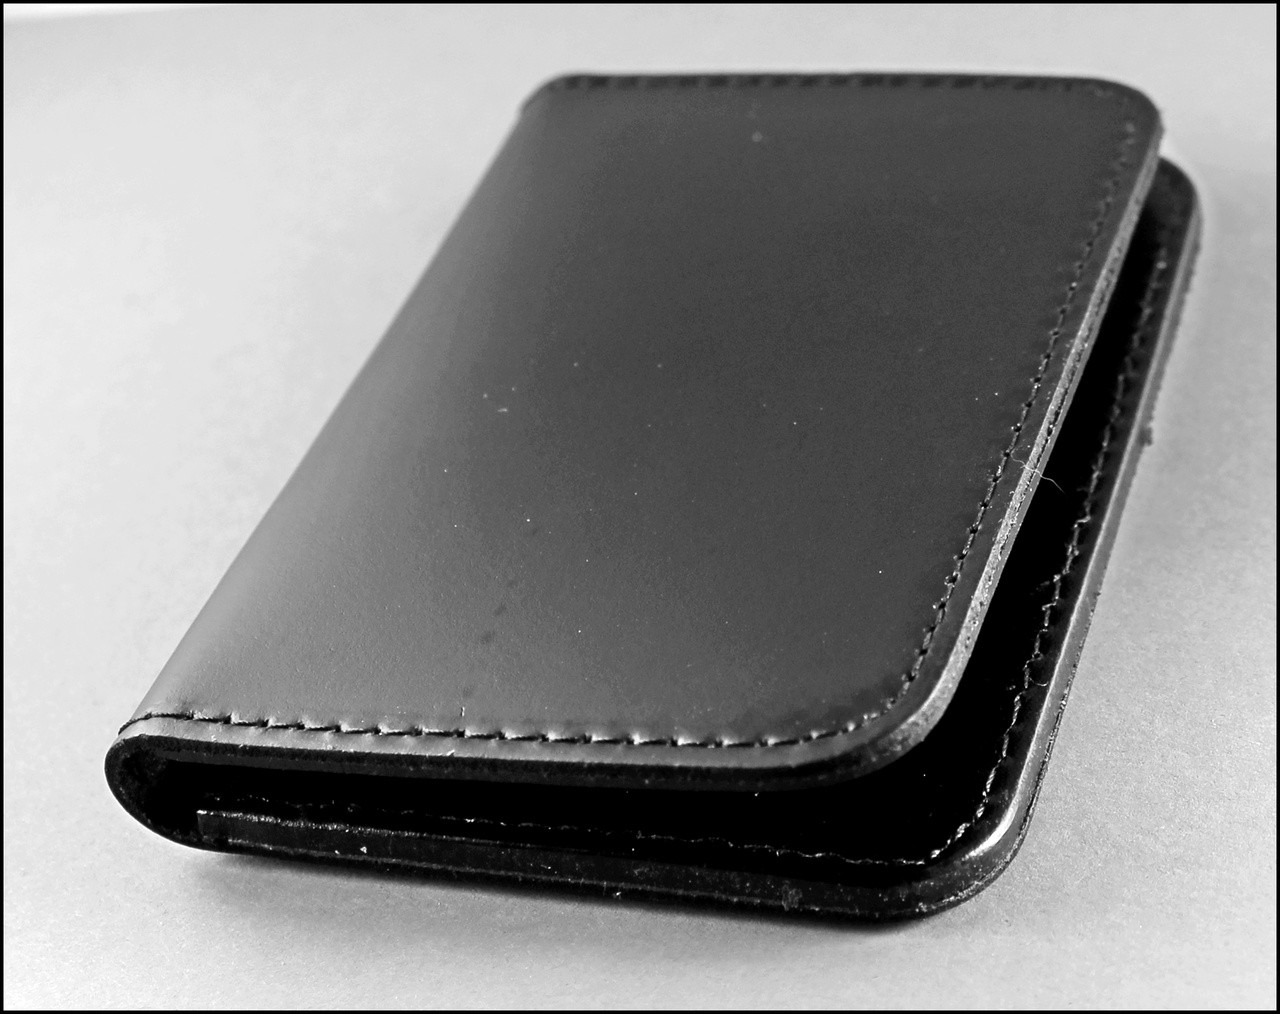 Immigration and Customs Enforcement Agent Mini Badge ID Wallet closed view